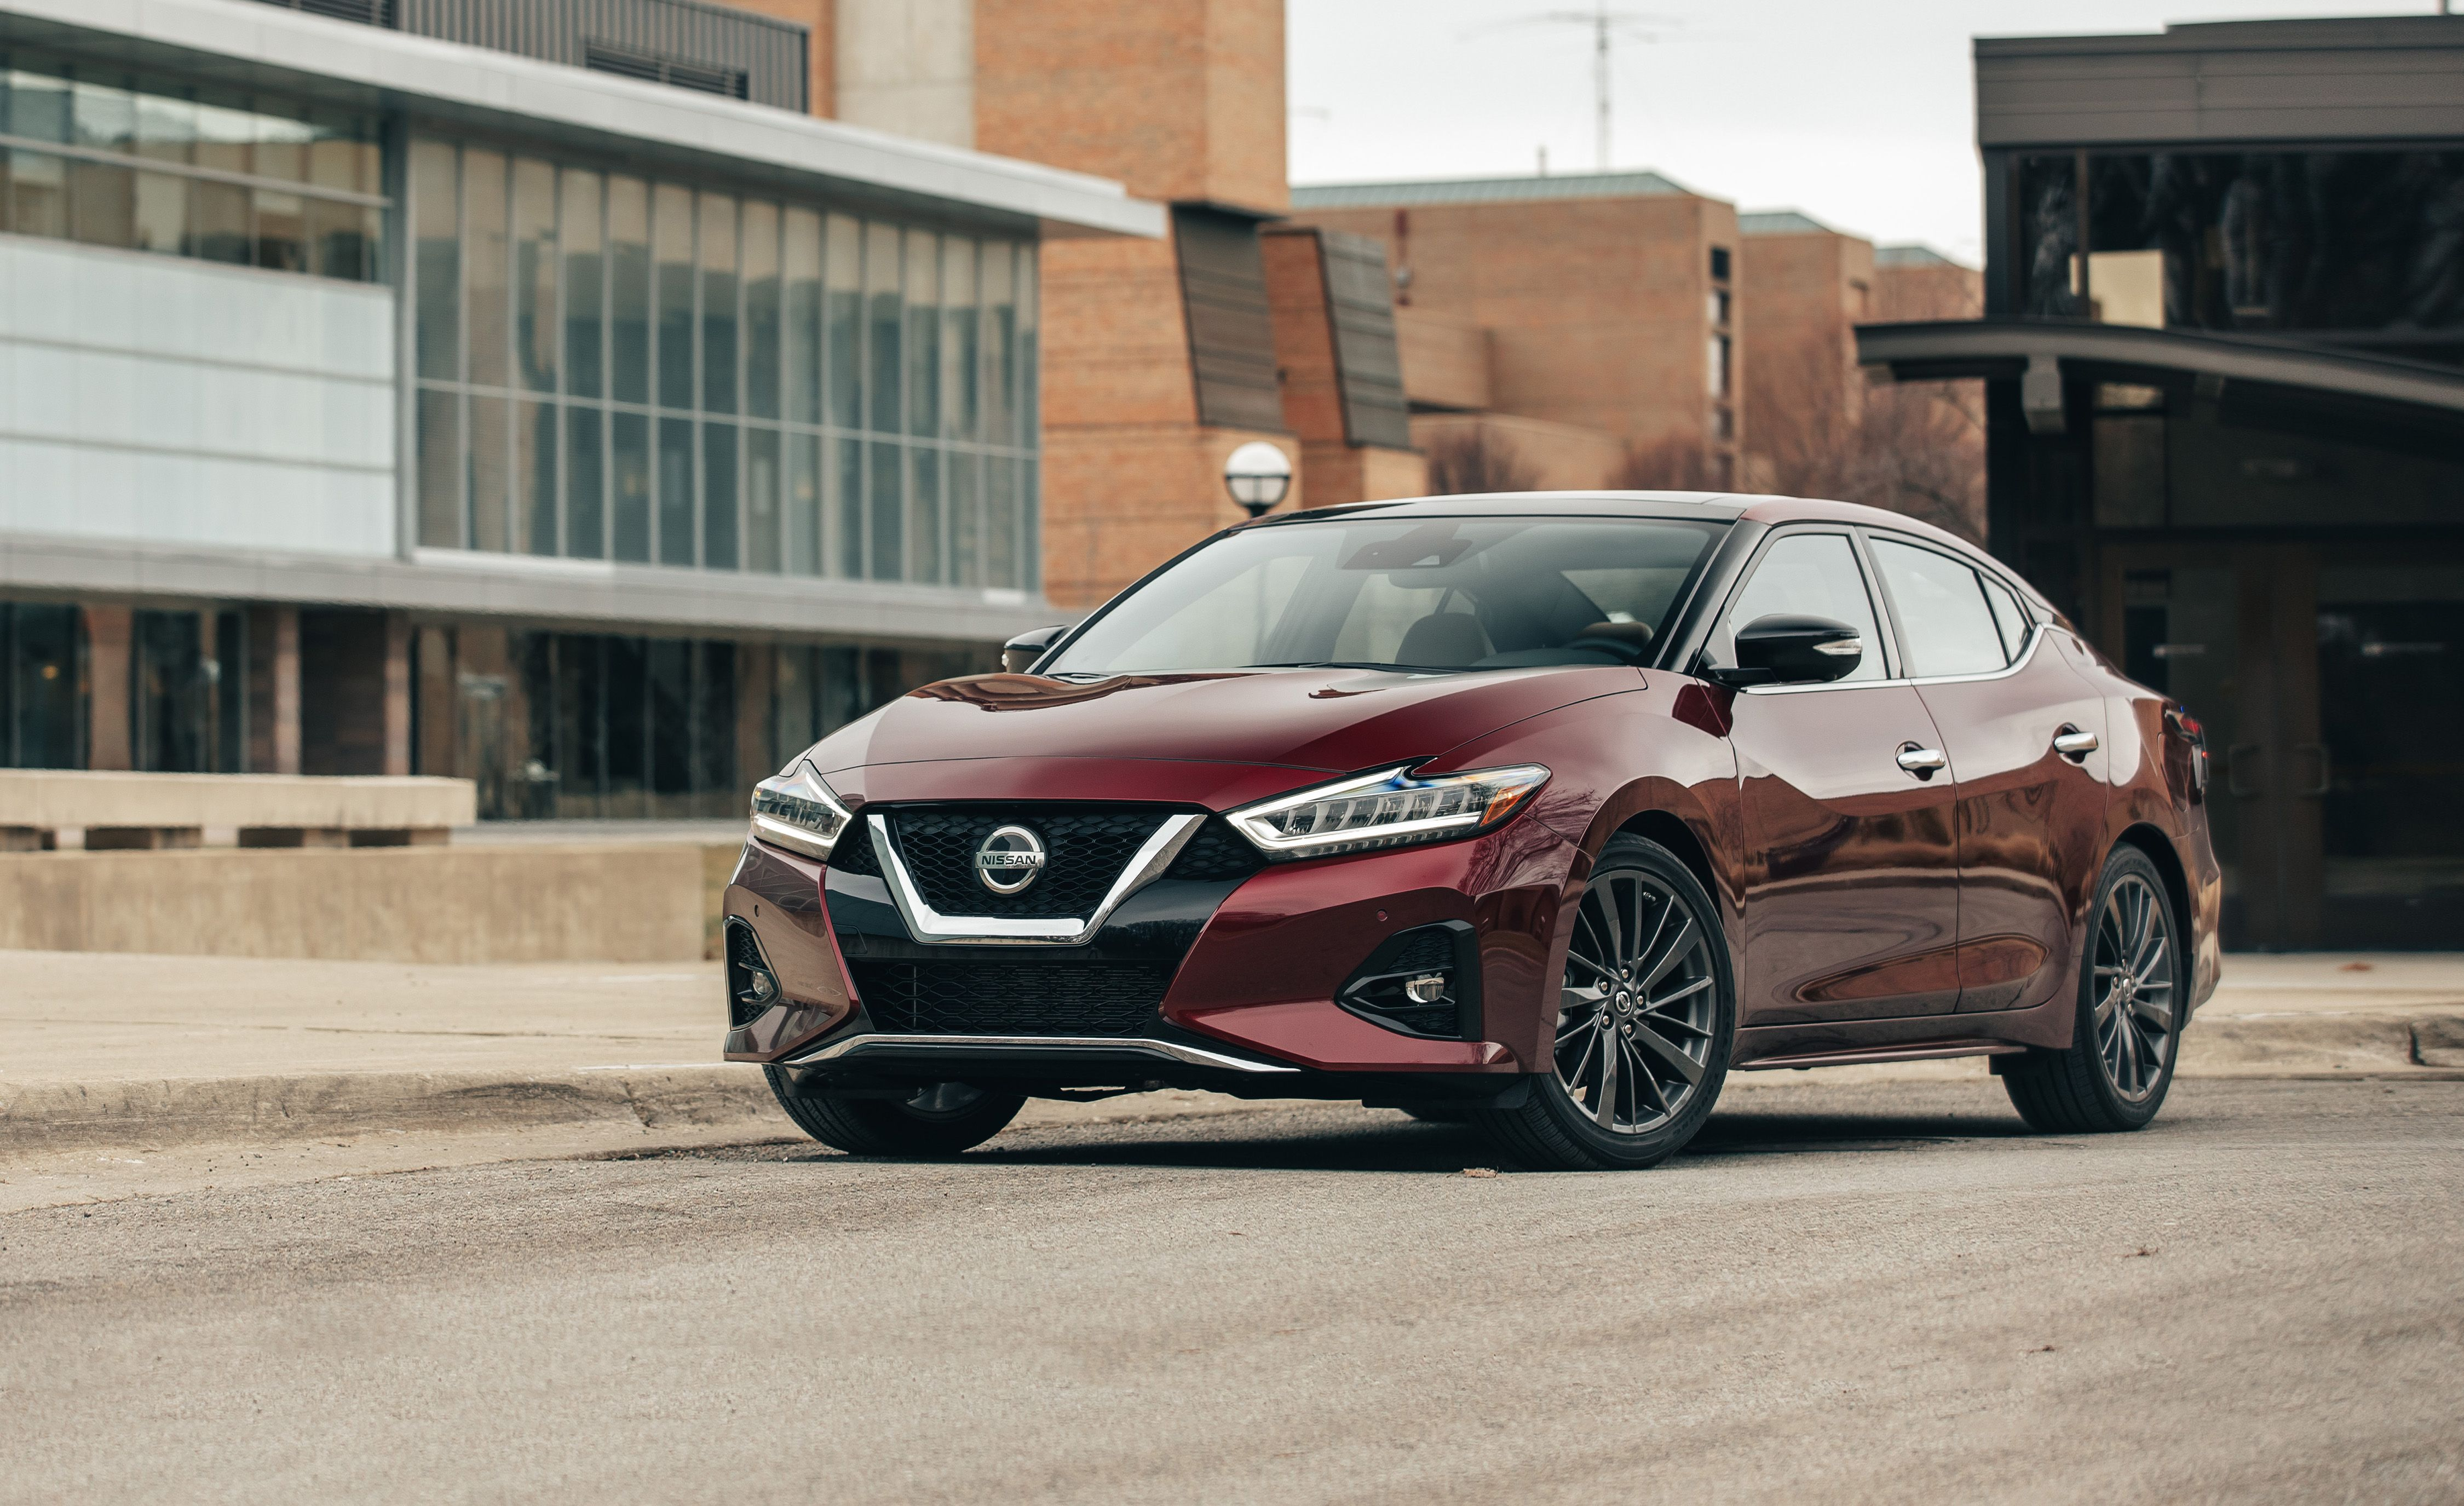 2019 nissan maxima reviews nissan maxima price photos and specs car and driver. Black Bedroom Furniture Sets. Home Design Ideas